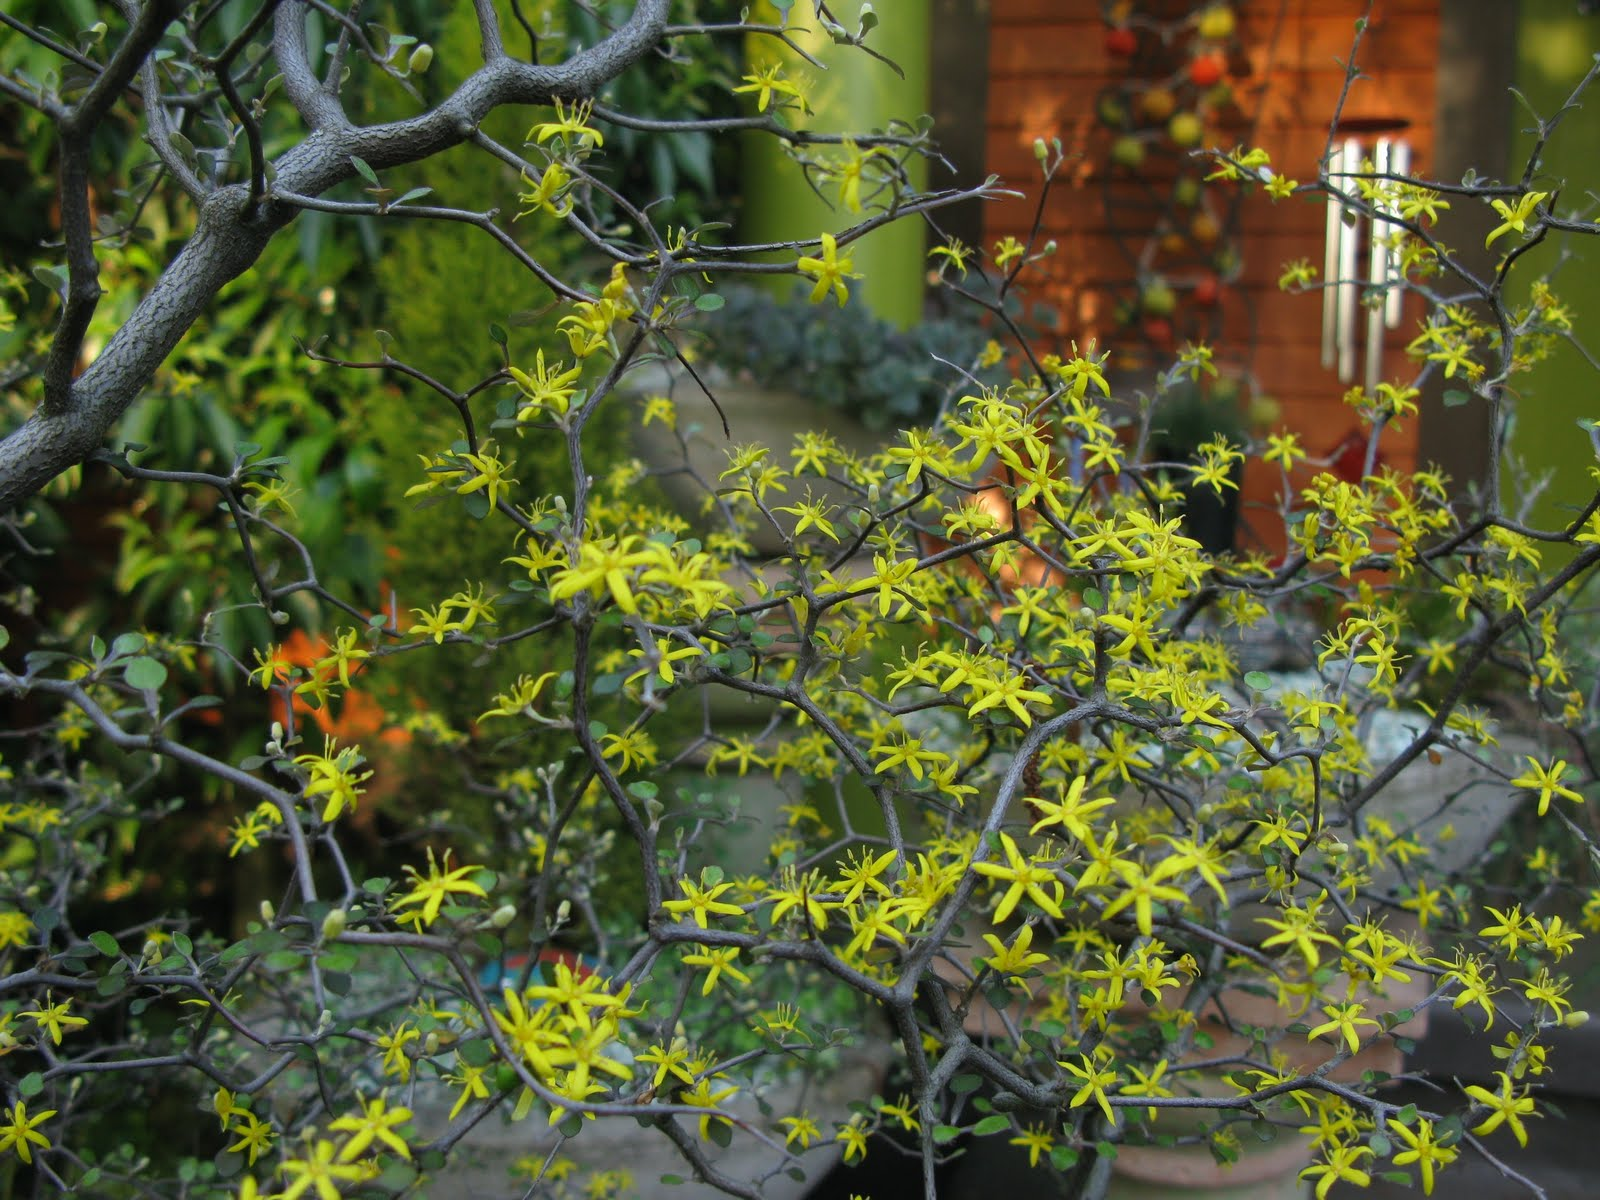 Finally, the money shot: Corokia cotoneaster, the wire netting shrub from